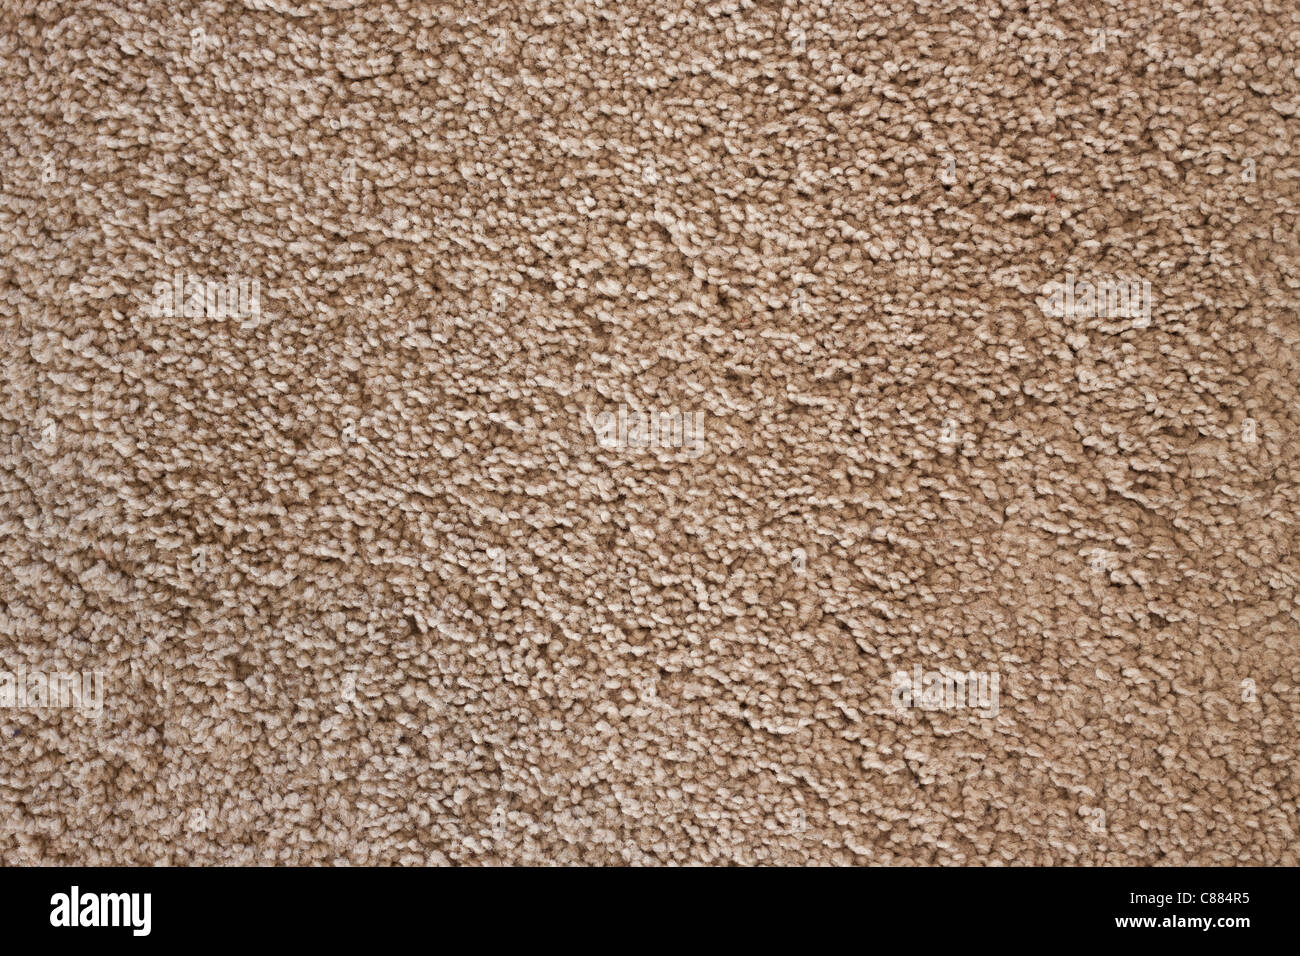 Detail of soft wool carpet, detailed texture background. - Stock Image